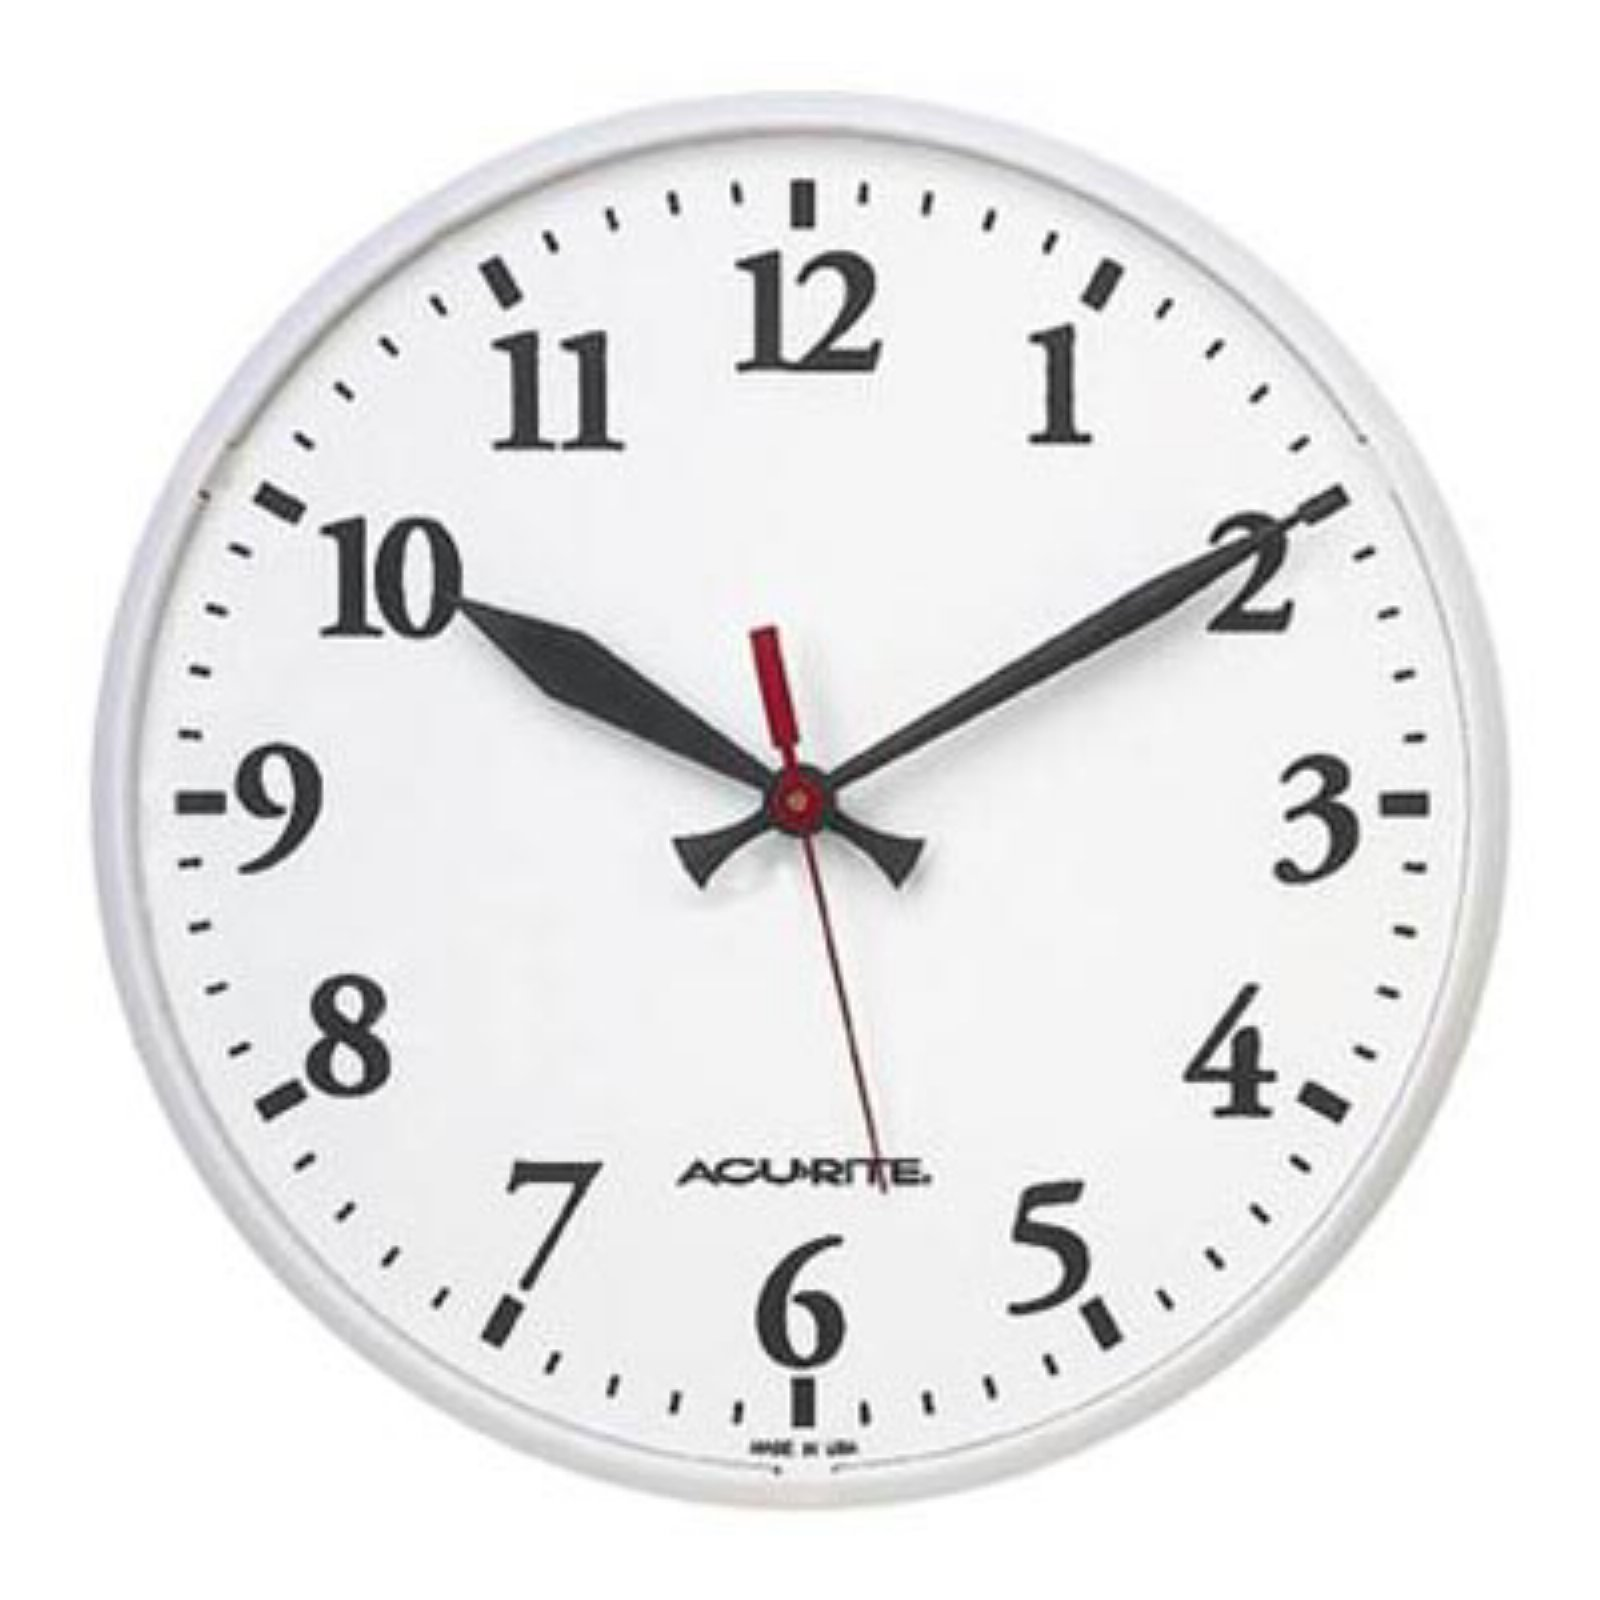 Acu-Rite 12.5 in. Indoor/Outdoor Wall Clock